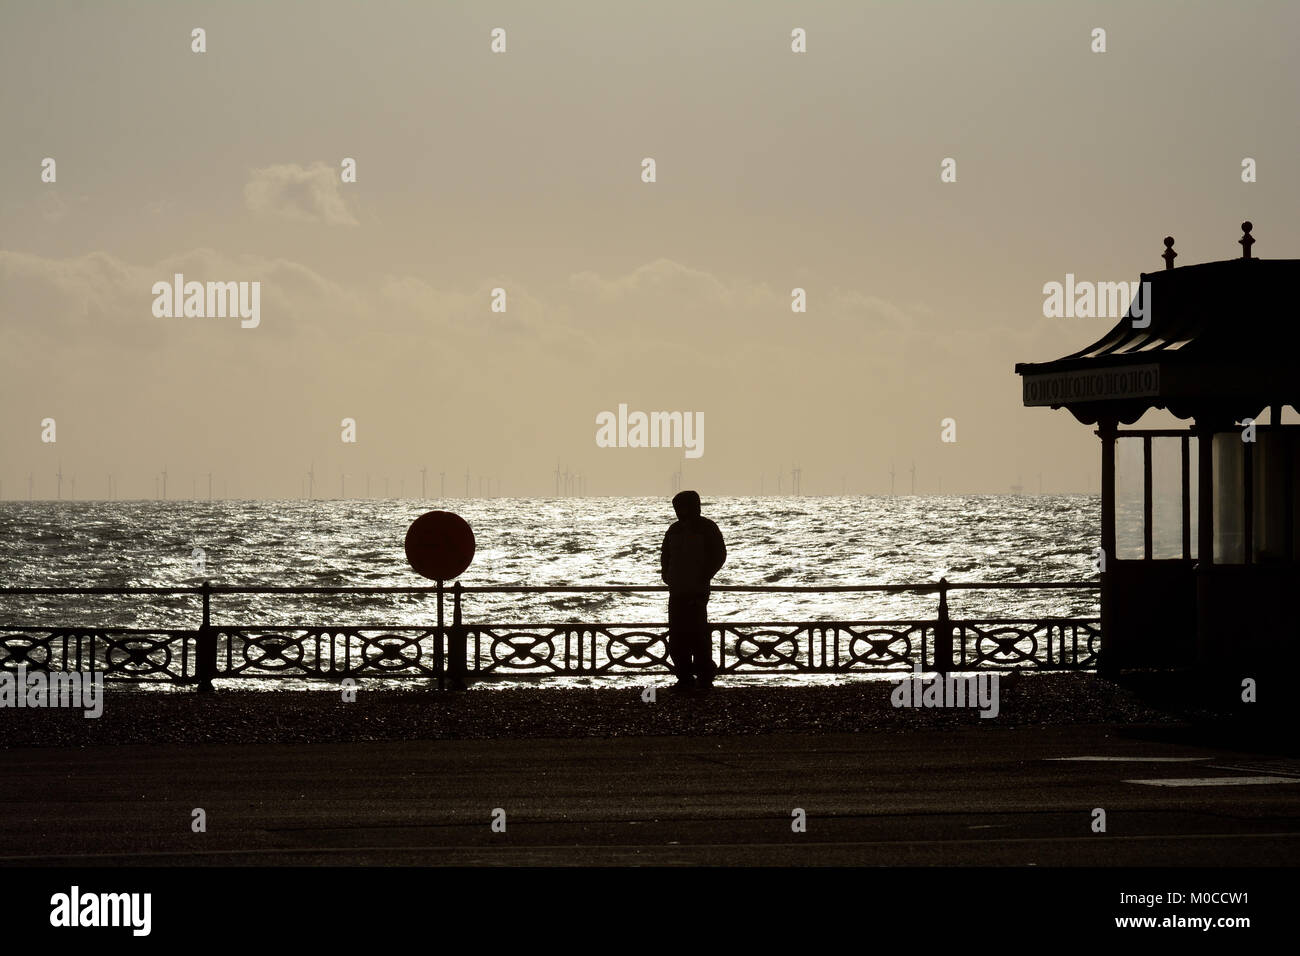 A man in a hooded top silhouetted against the ocean on Hove seafront - Stock Image